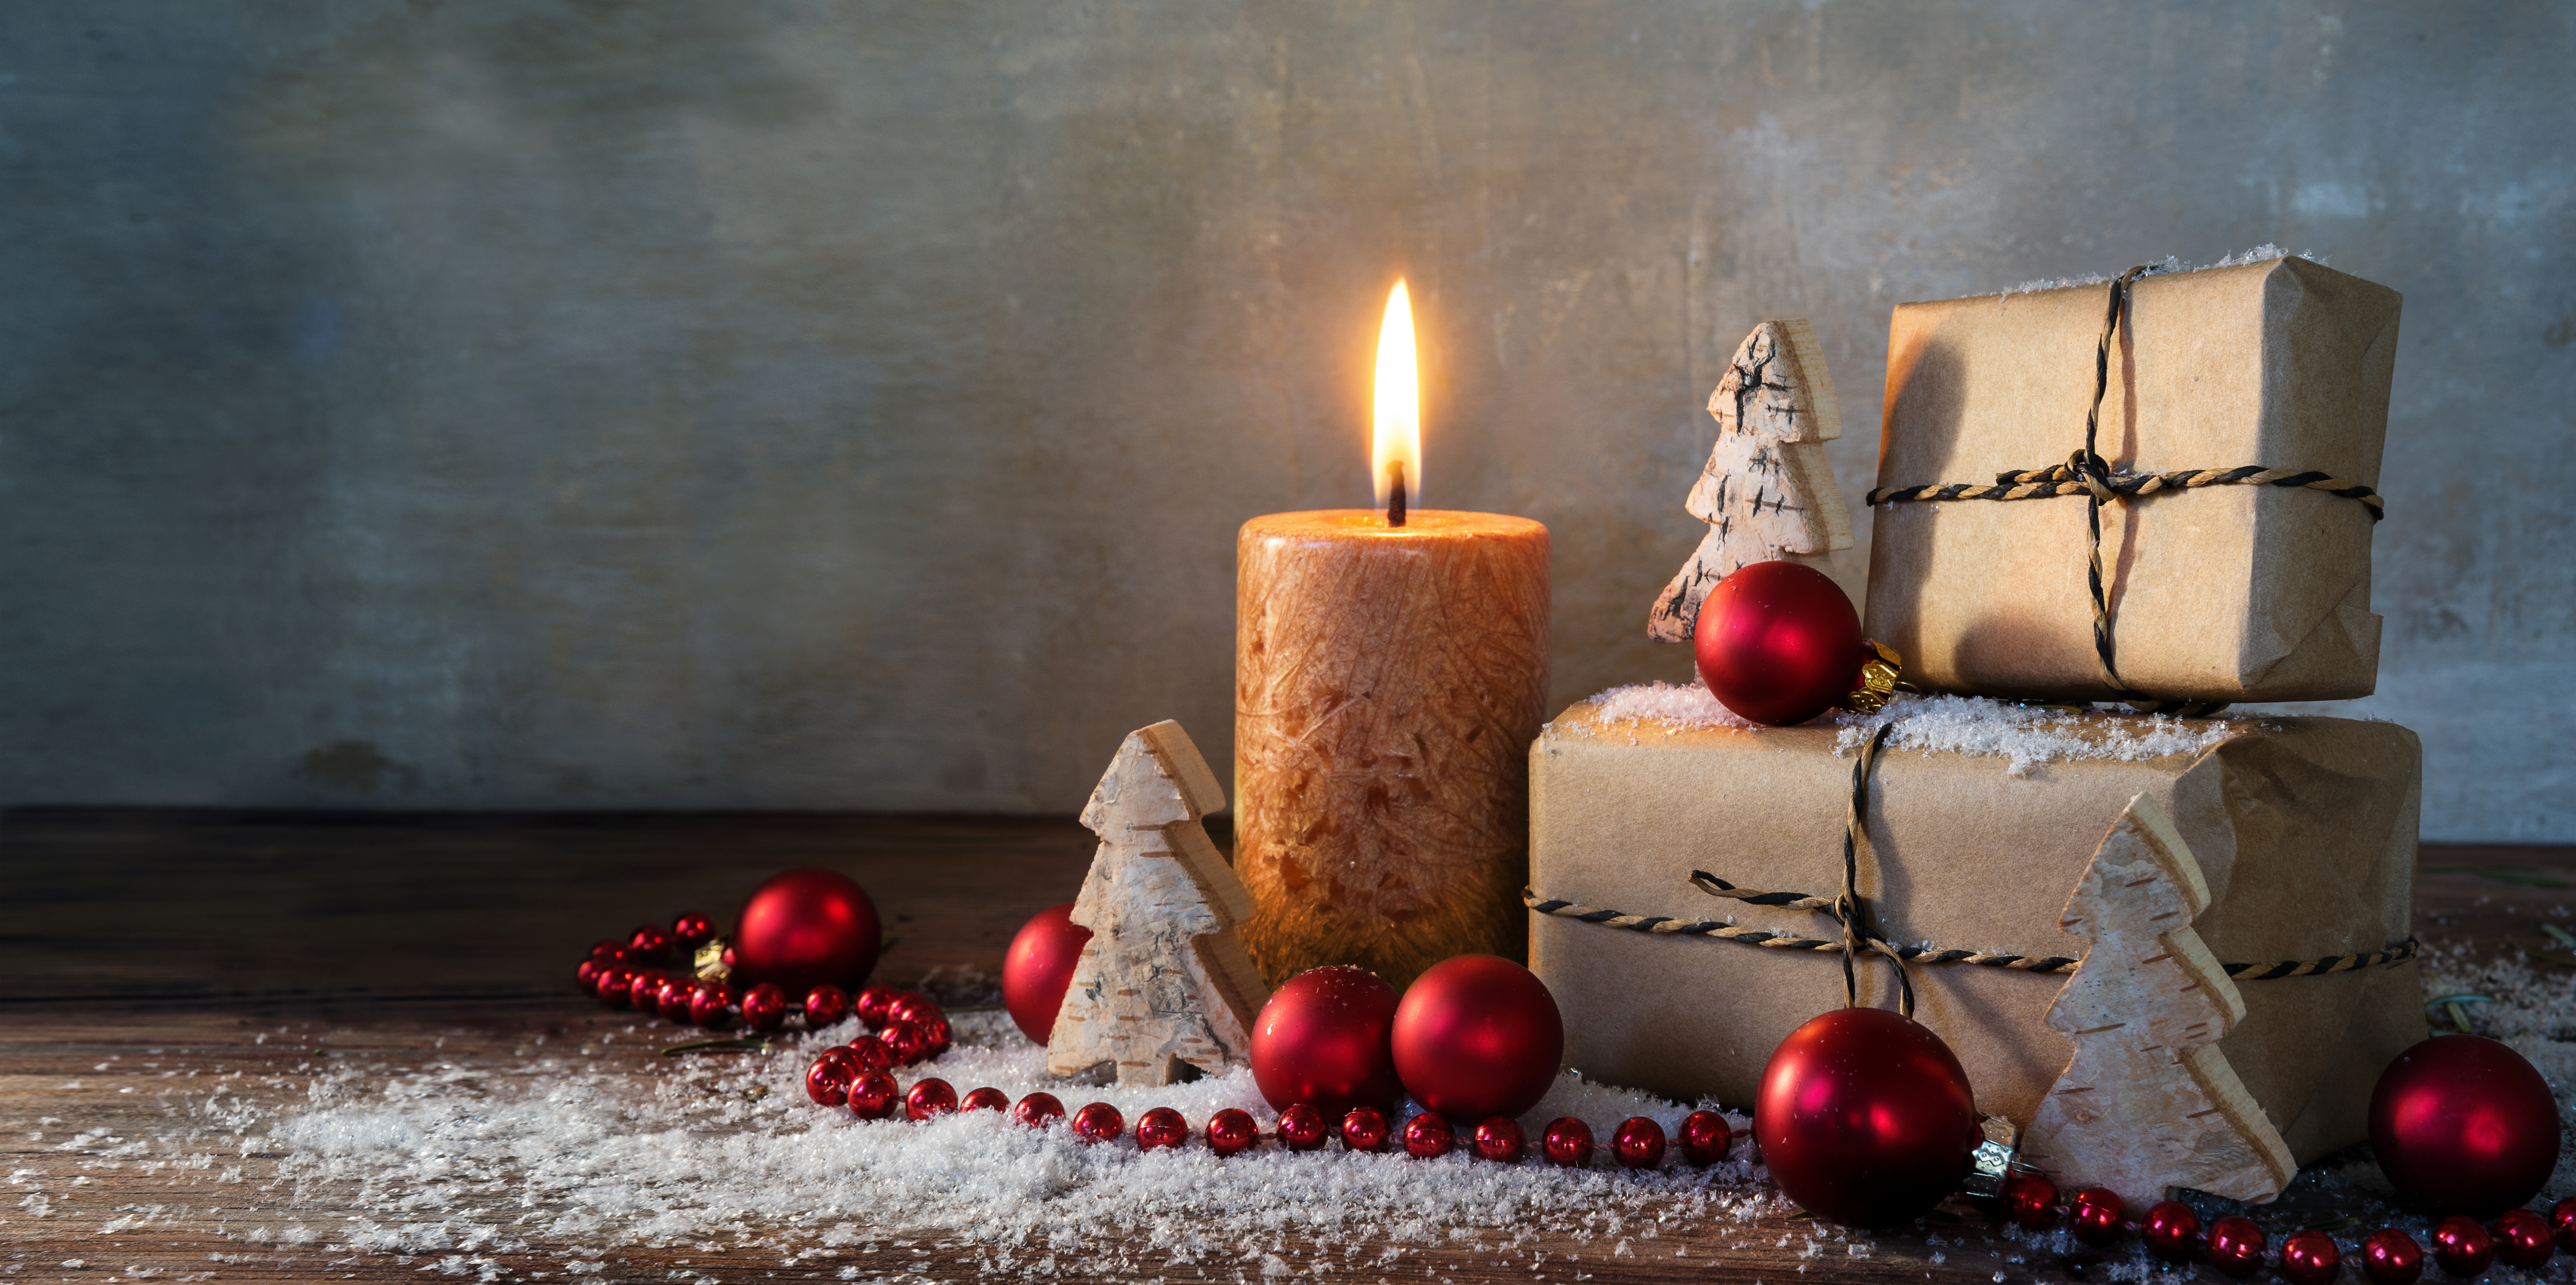 Noontime Advent Services